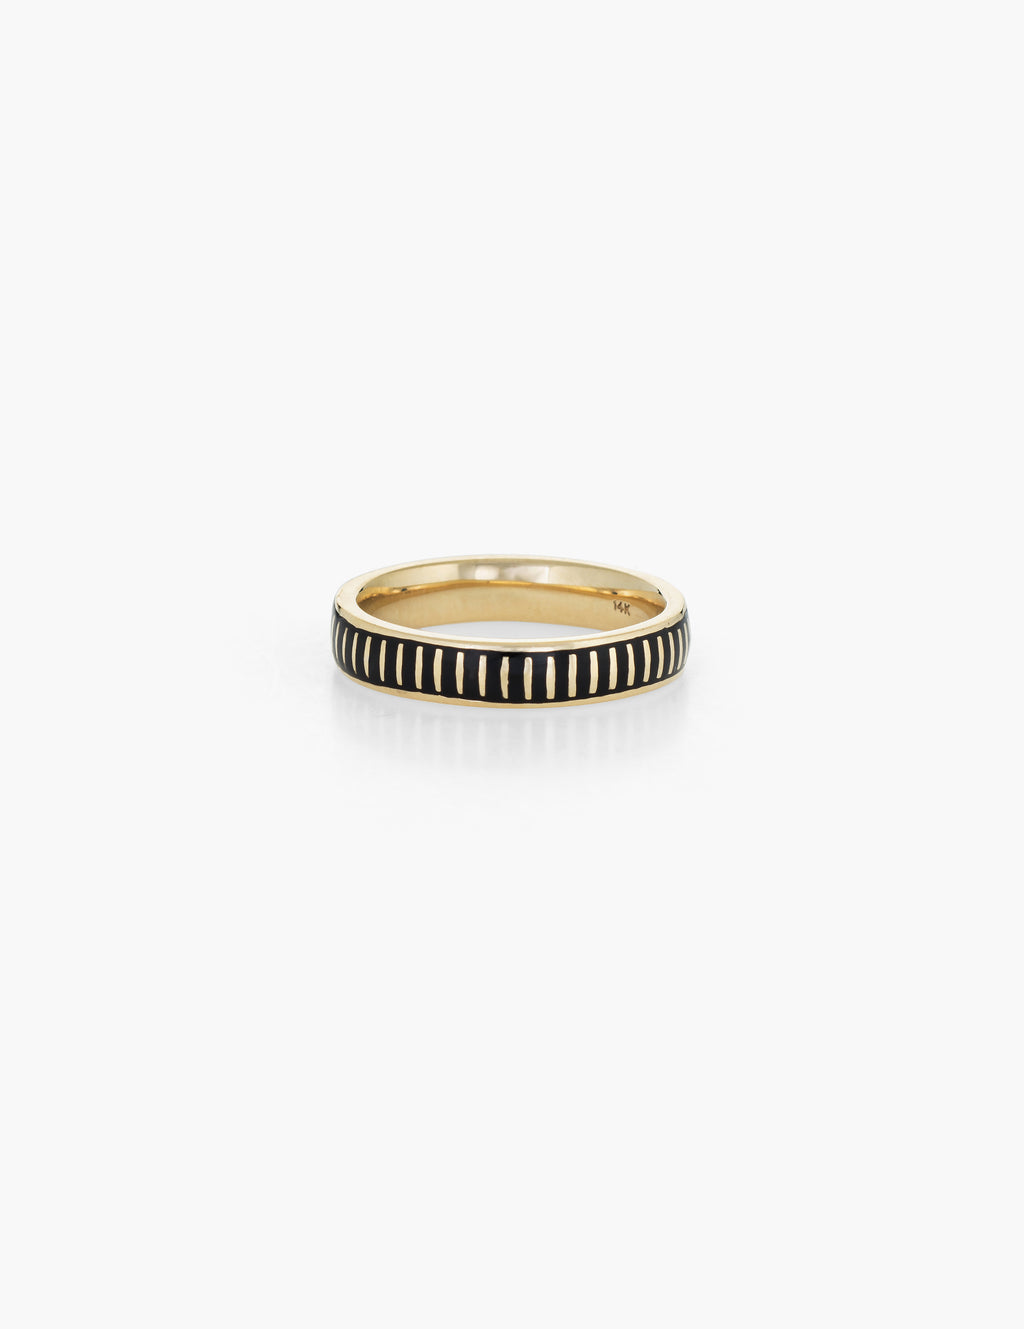 Striped Black Enamel Ring